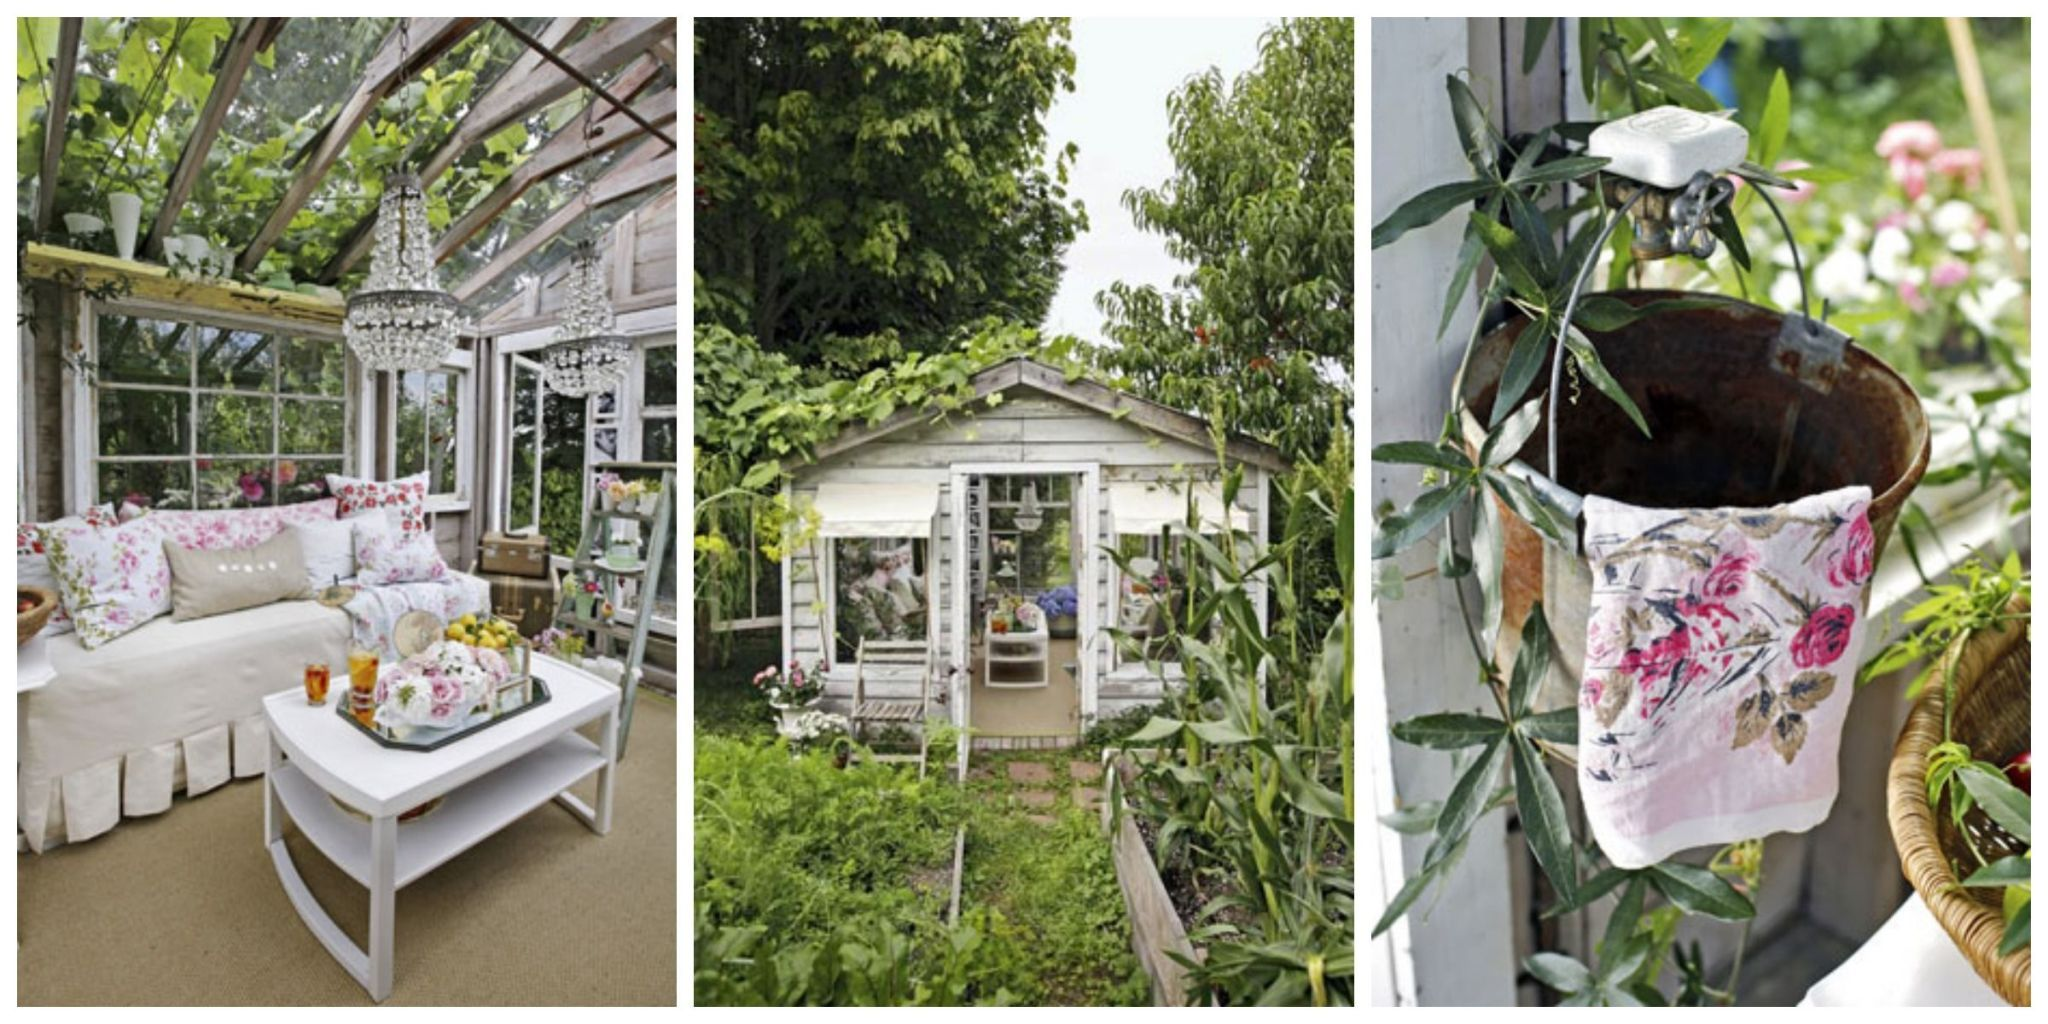 Captivating As A Wedding Gift, One Womanu0027s Husband Took Apart An Old Garden Shed On  Their Property And Rebuilt It As An Adorable Greenhouse Getaway.